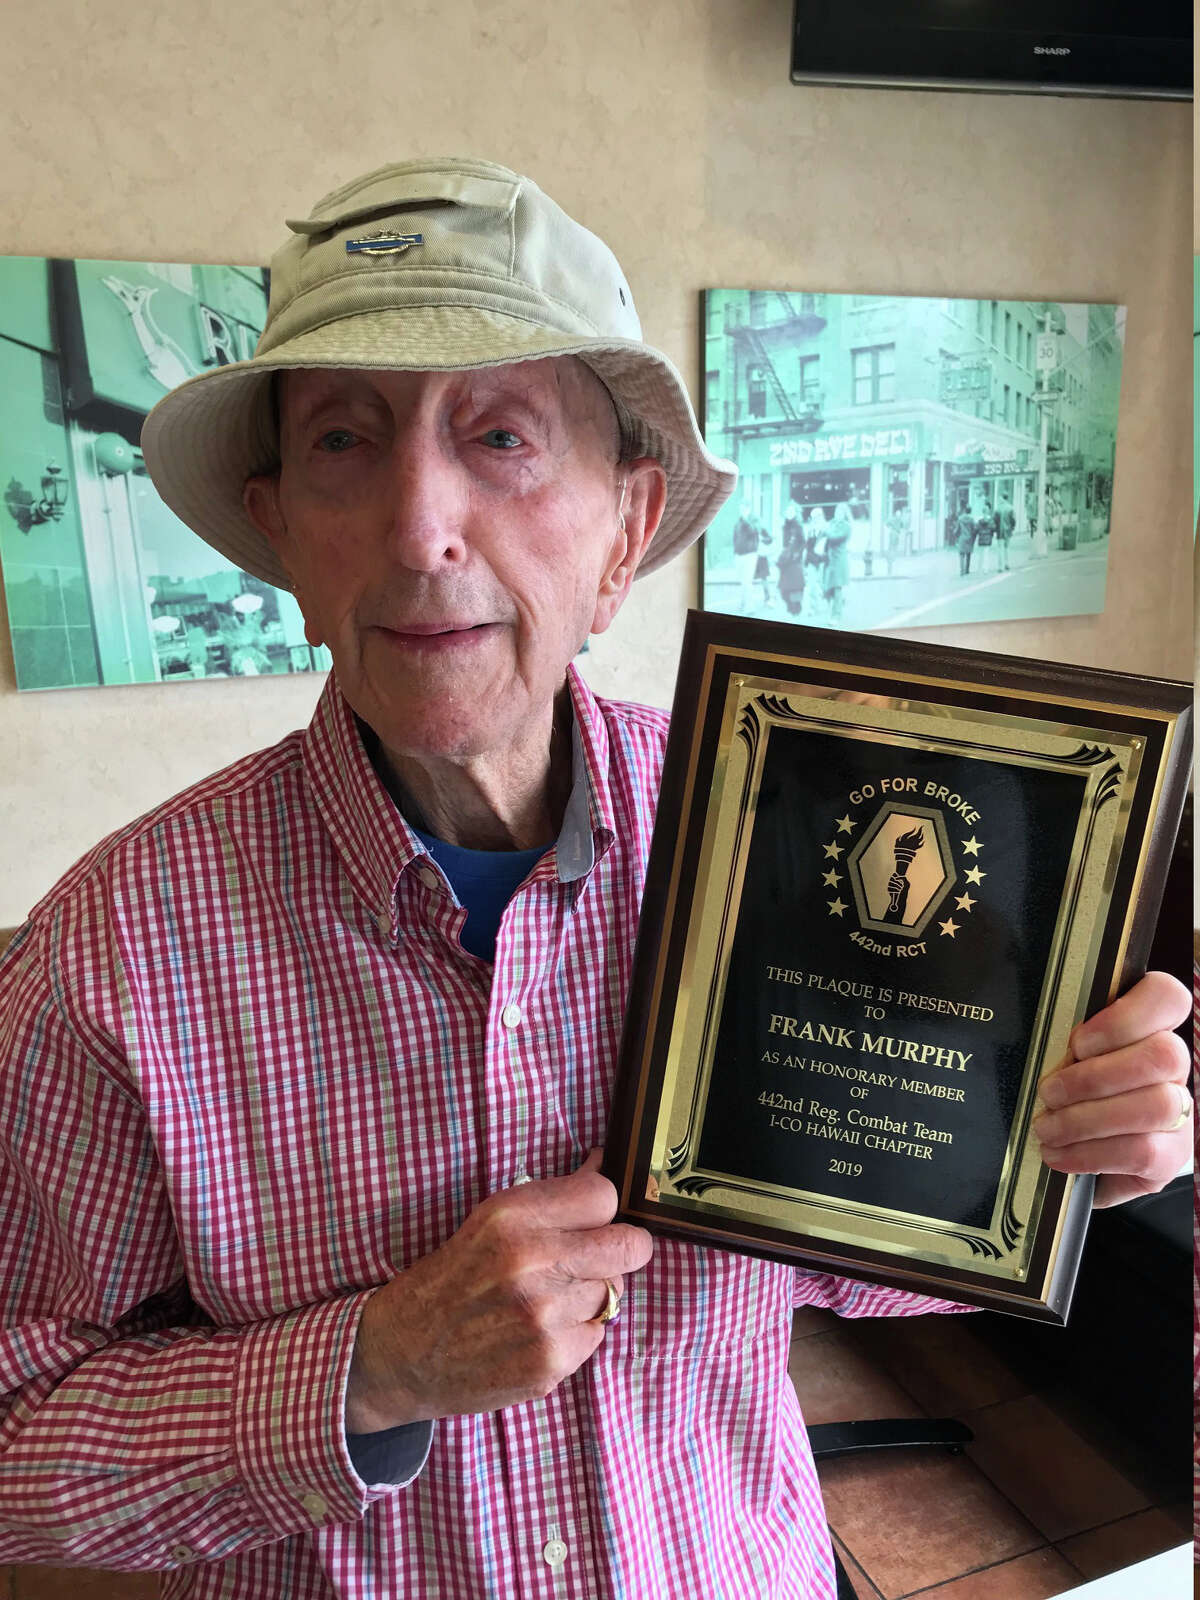 World War II veteran Frank Murphy was recently given this plaque as an honorary member of the 442nd combat unit, comprised of Japanese-Americans, whom he fought alongside in the Battle of Anzio.